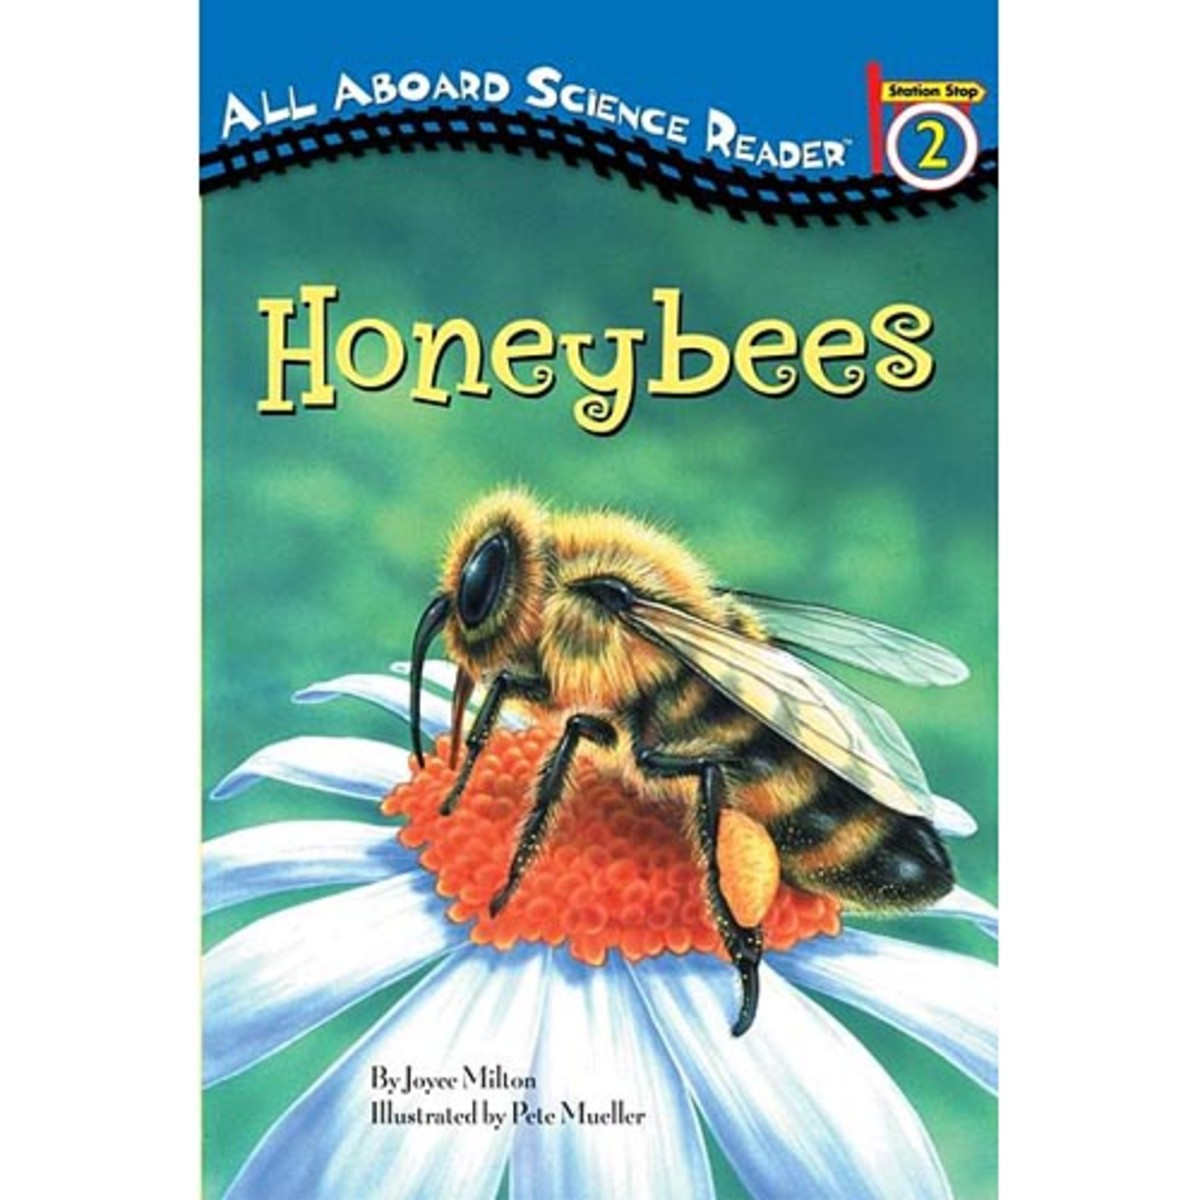 Honeybees (Penguin Young Readers, L3) by Joyce Milton